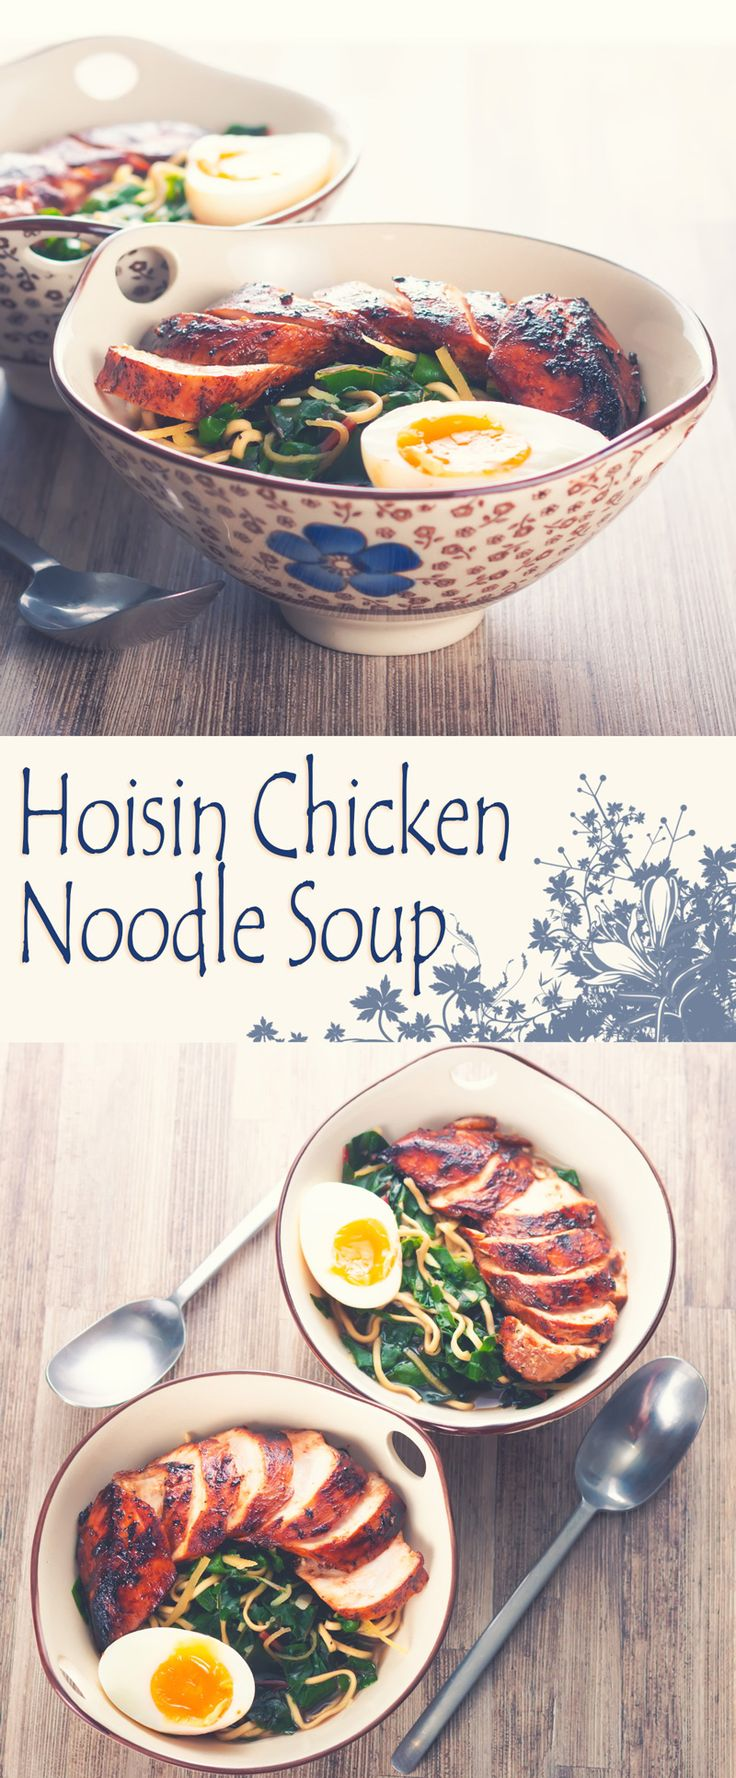 Treat yourself to some snacks! http://amzn.to/2oEqnkm Hoisin Chicken Noodle Soup Recipe: This dish is a bit of an homage to Wagamama a place I liked for quick and simple food in the UK, an Asian inspired hoisin chicken breast in a simple broth